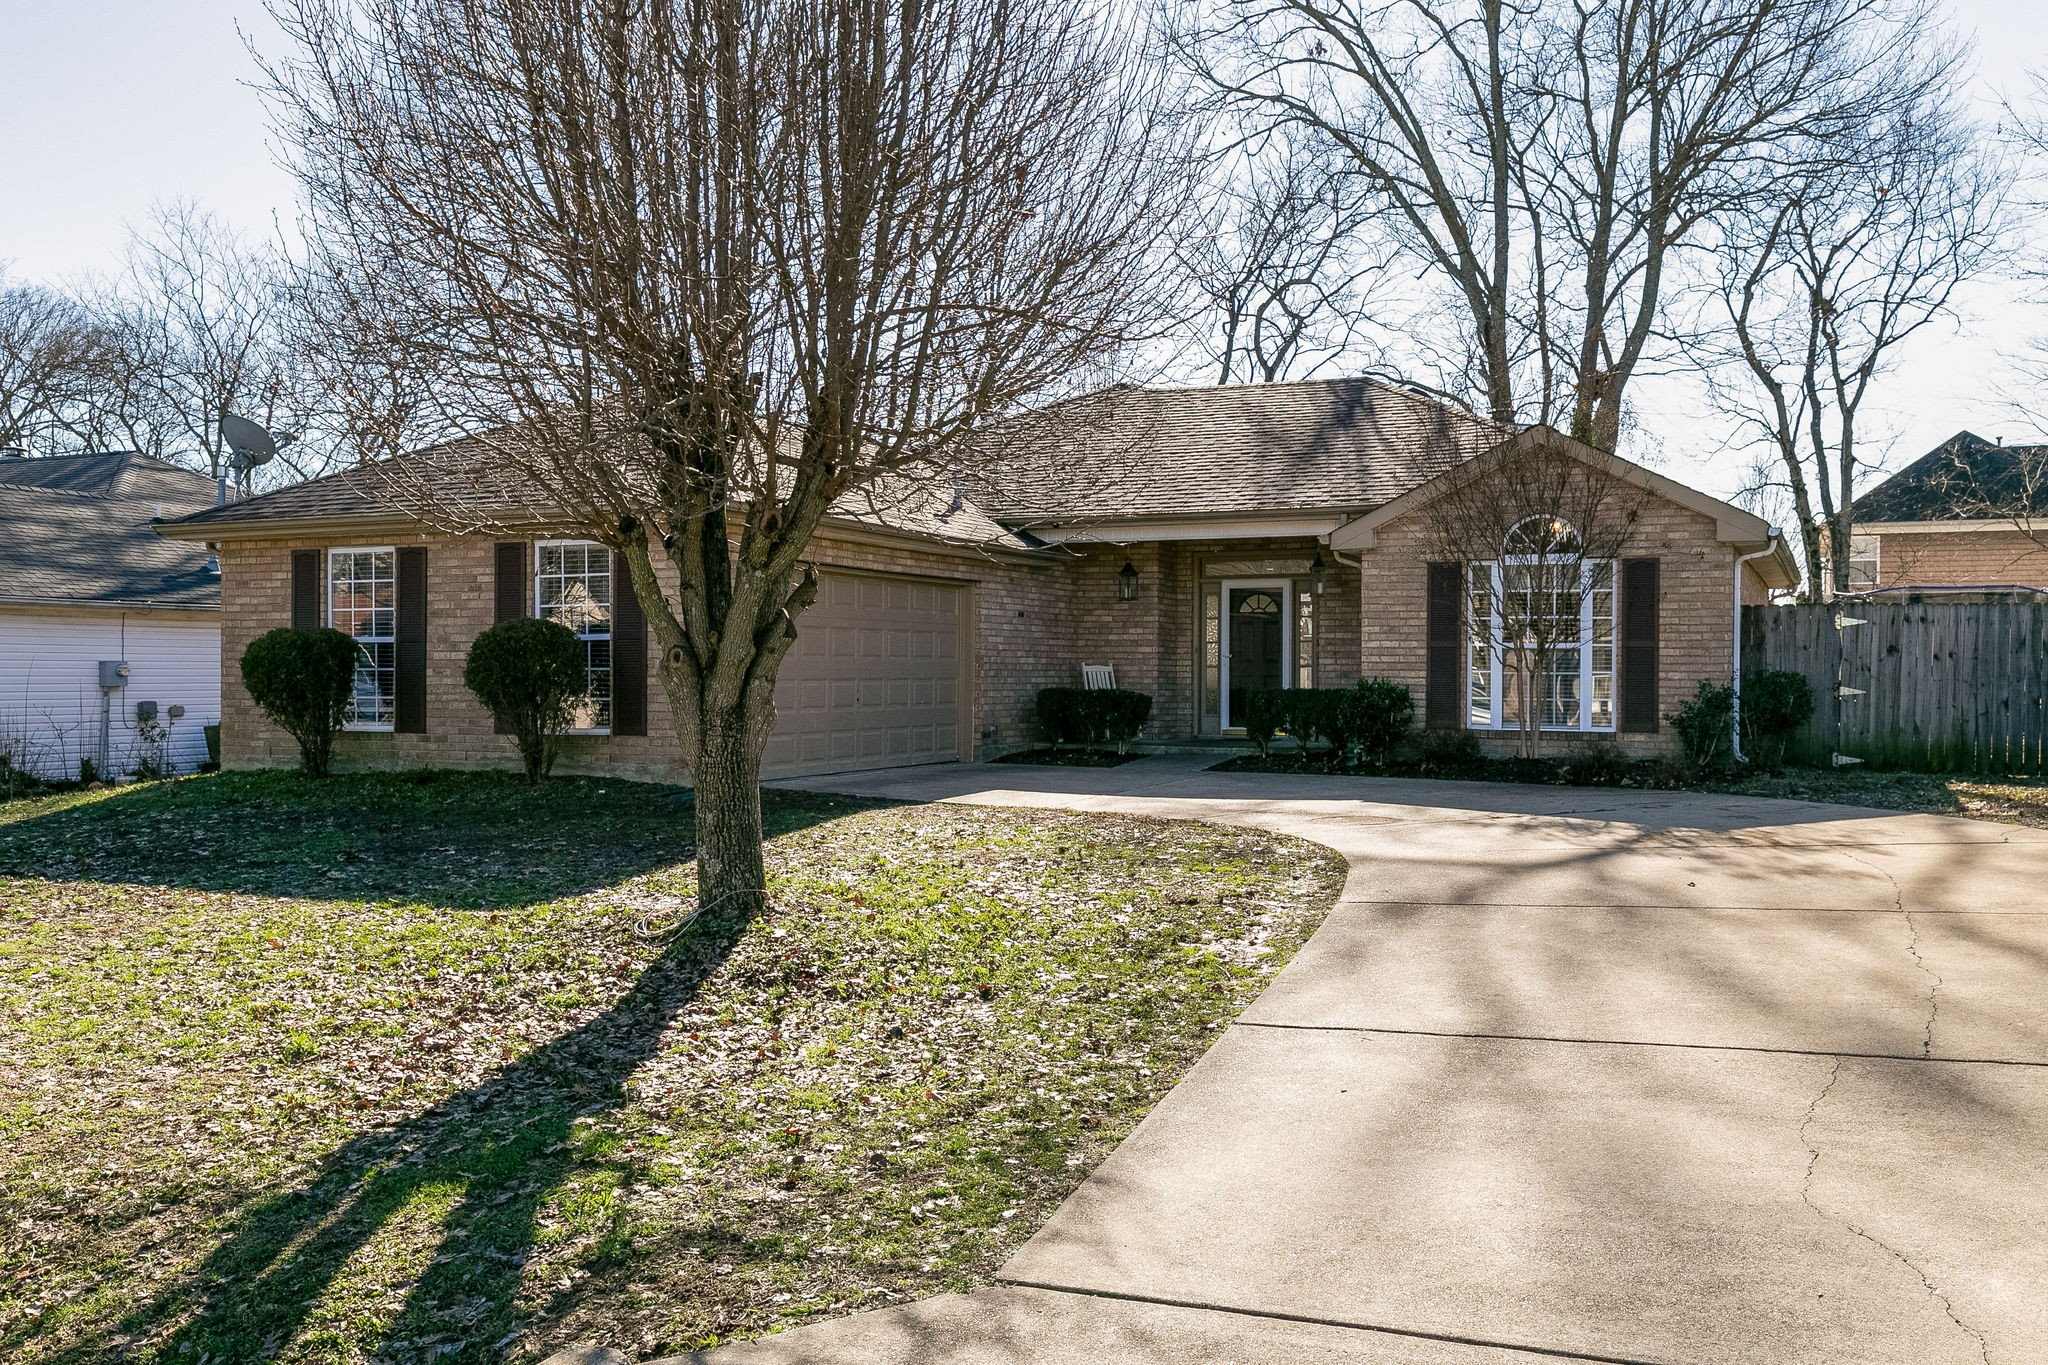 2235 Joann Dr, Spring Hill in Williamson County, T County, TN 37174 Home for Sale